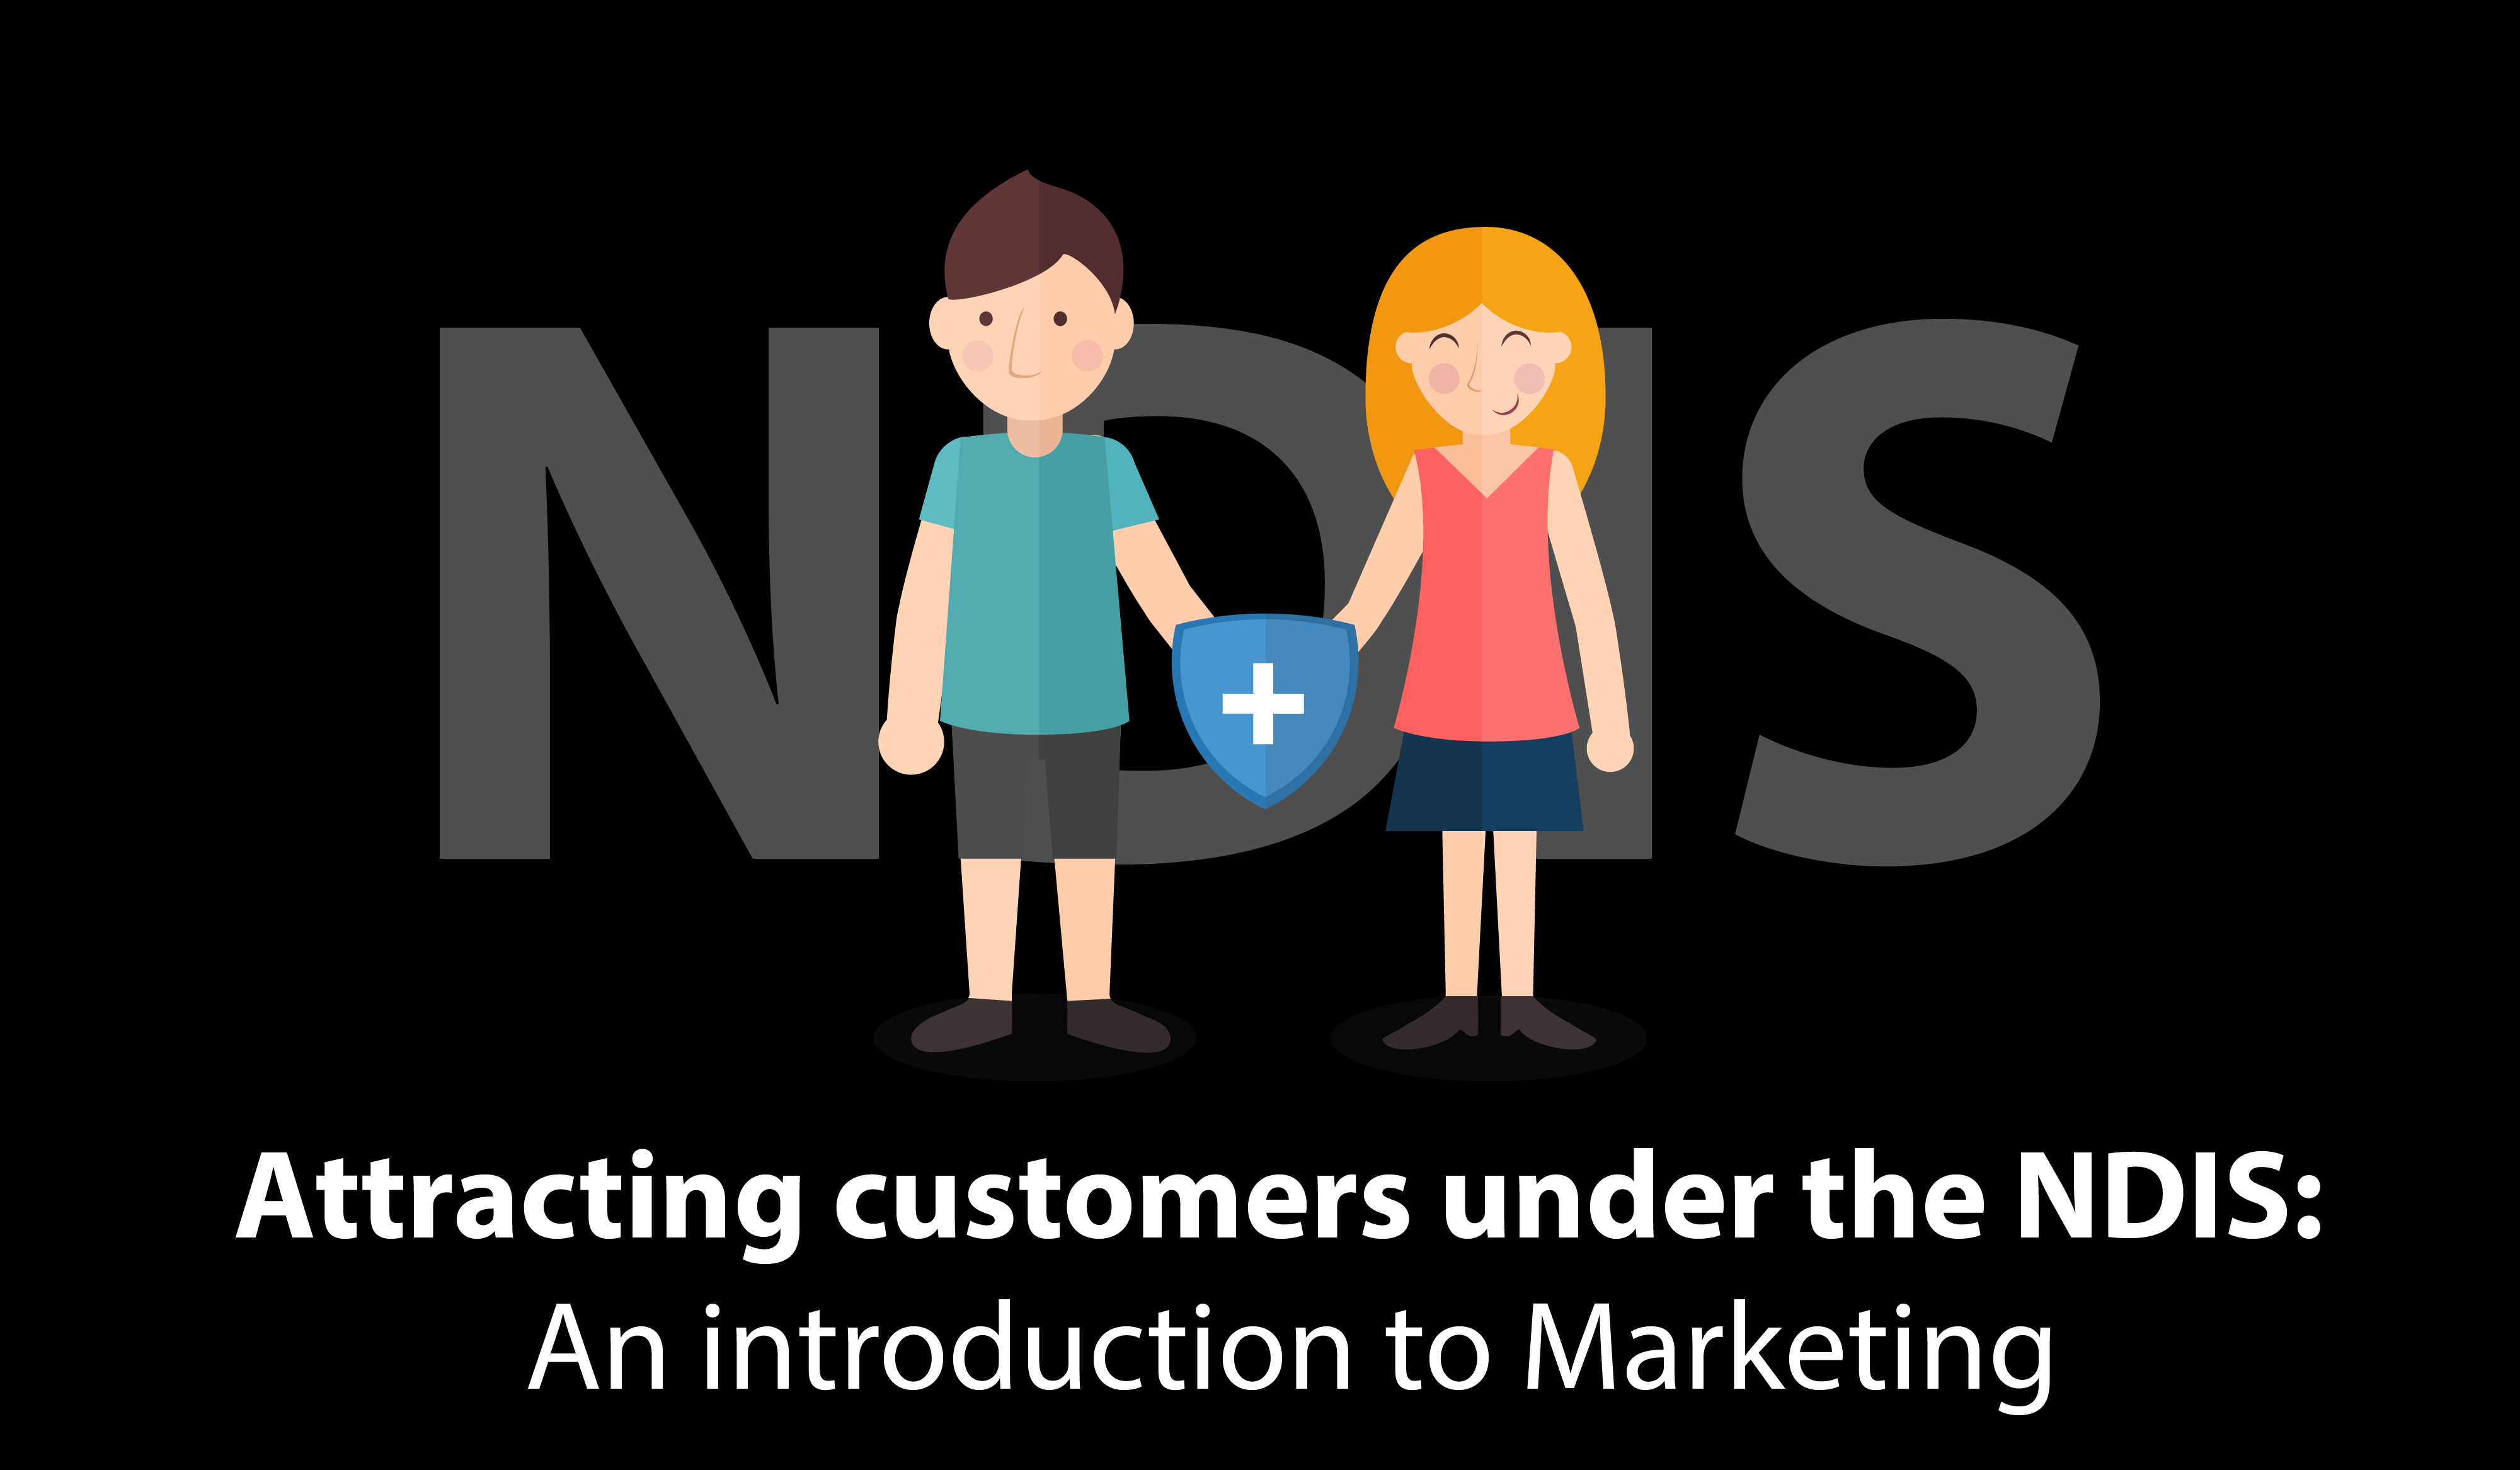 Attracting business under the NDIS: An introduction to marketing.